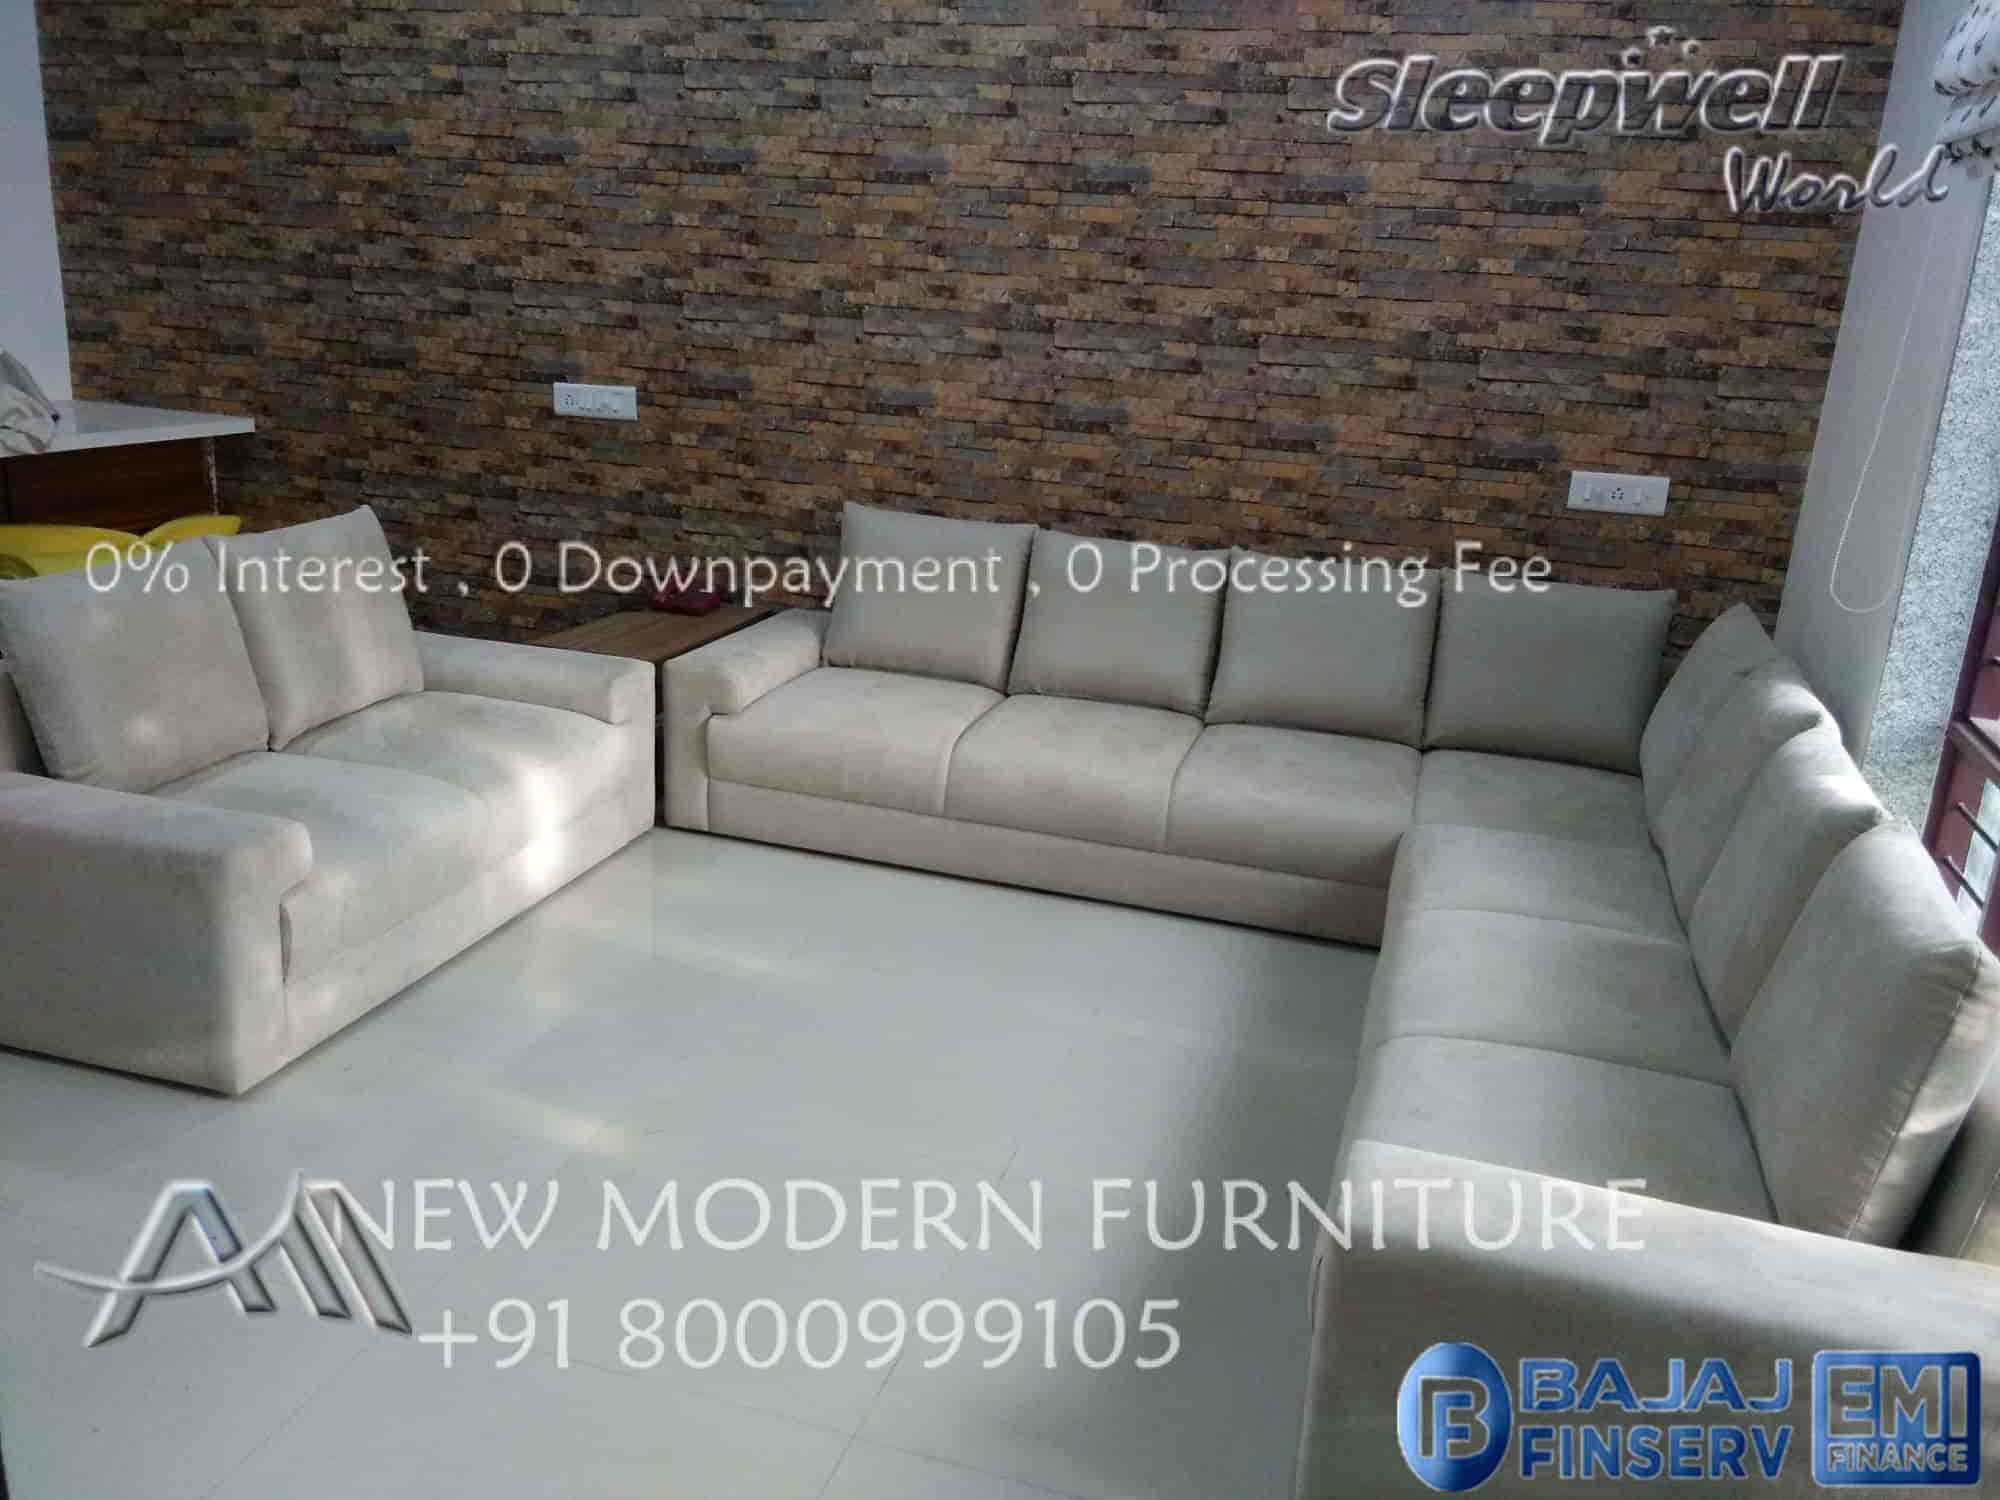 New Modern Furniture Waghodia Road New Modern Furniture see New